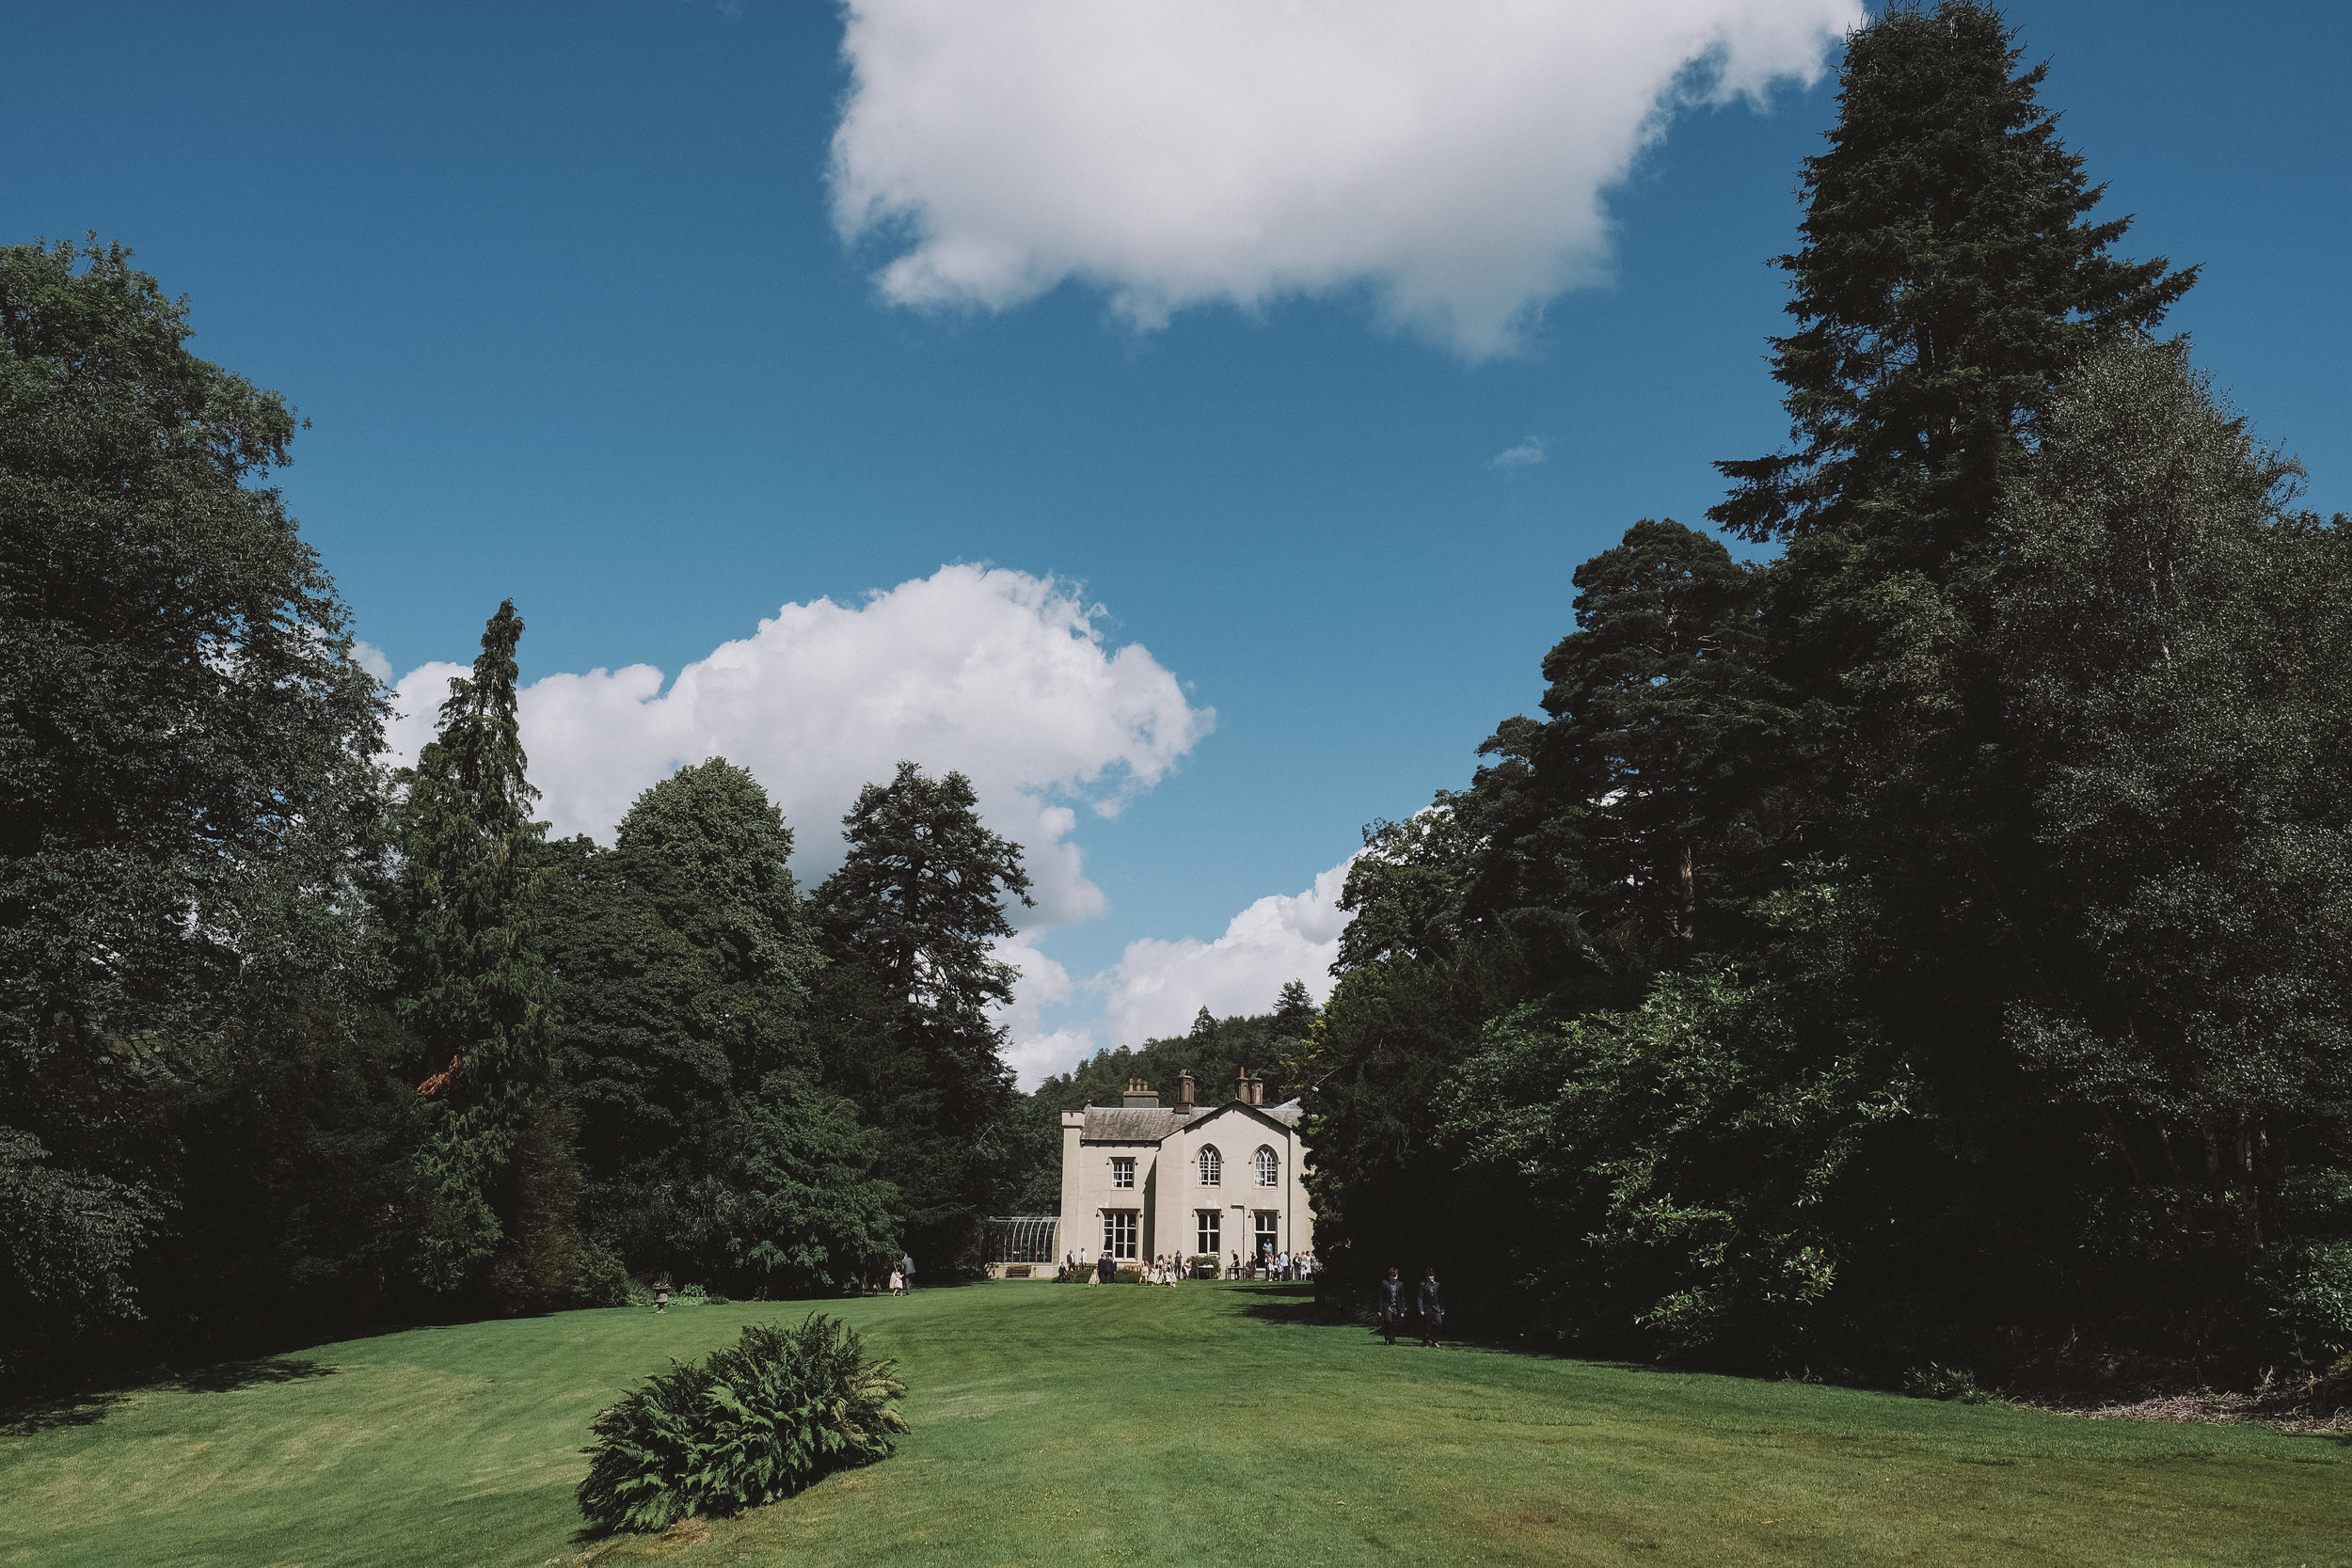 Monk Coniston Hall nestled amongst the trees at Julia and Darren's Lake District wedding by Barry Forshaw